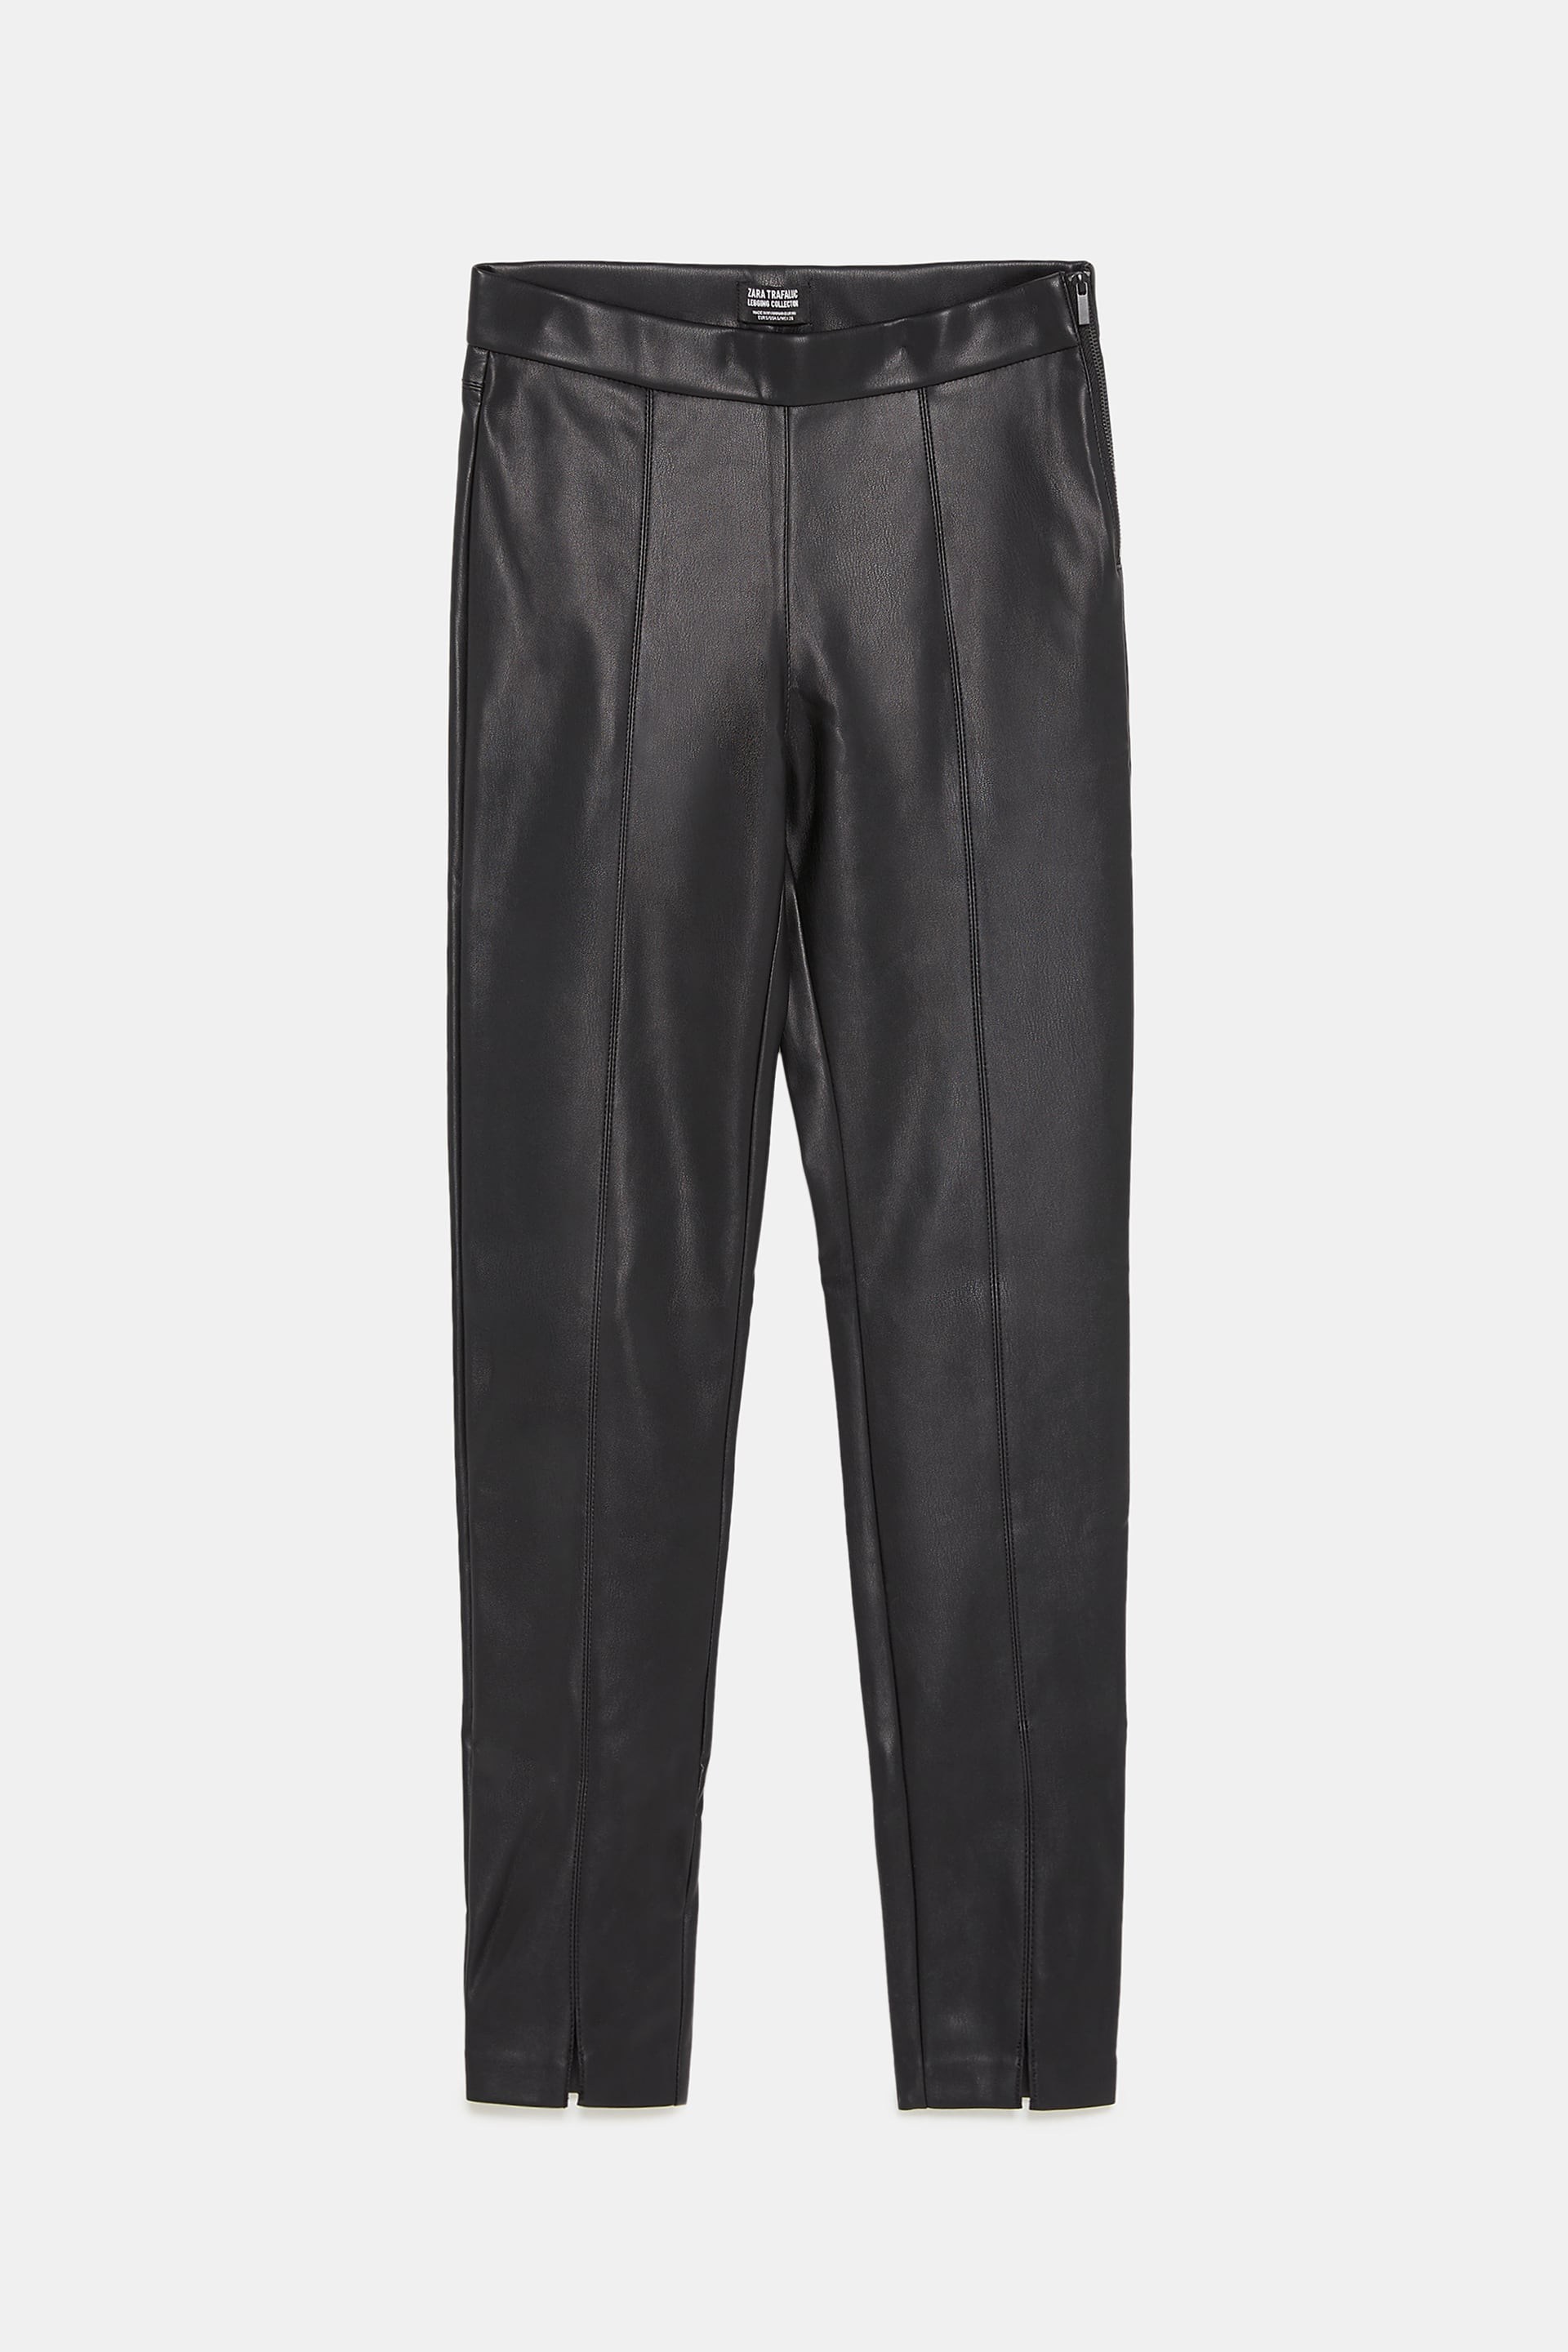 https://www.zara.com/us/en/faux-leather-leggings-p07102219.html?v1=7972502&v2=1180702